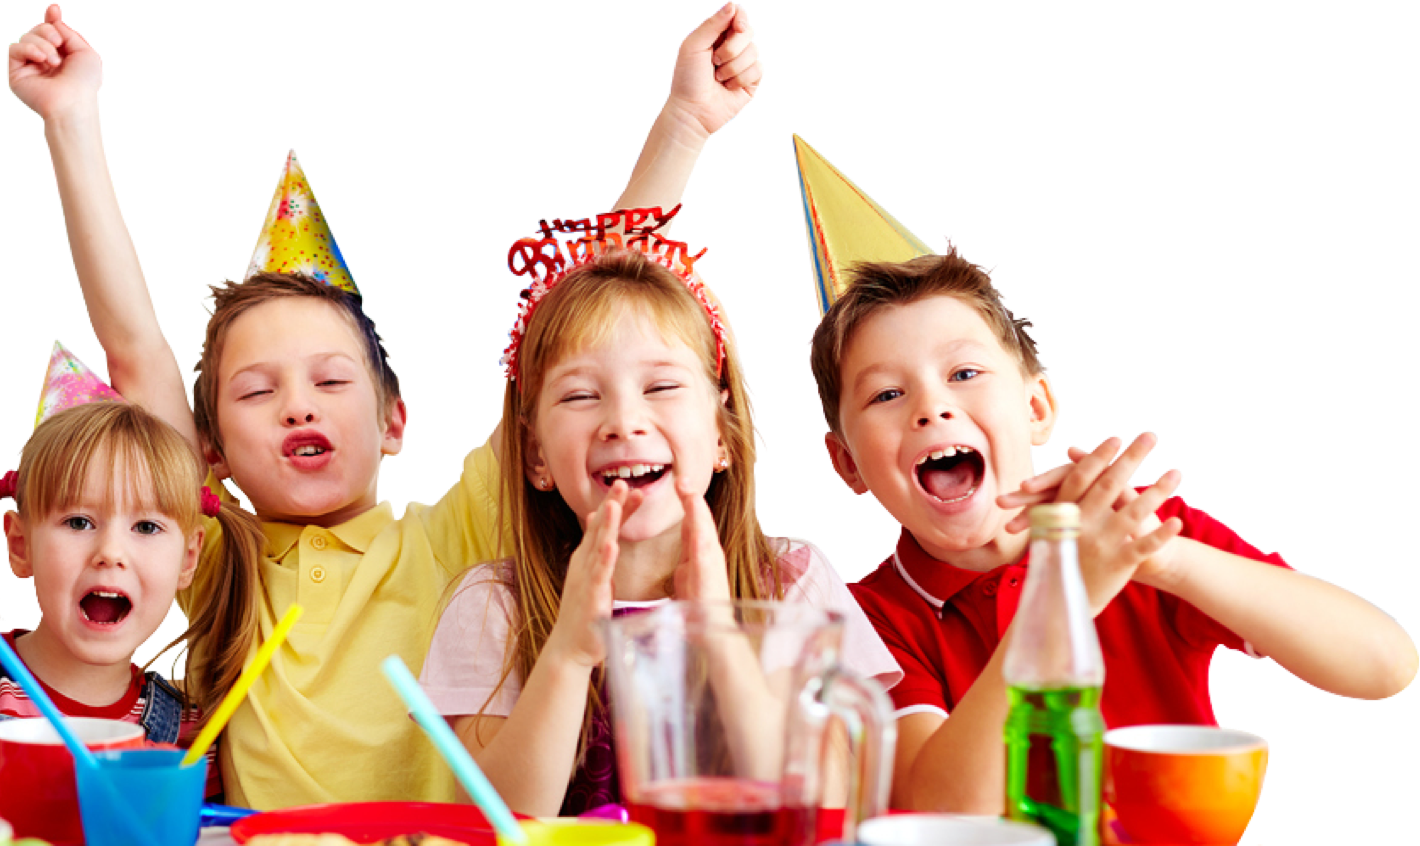 A group of kids excited about a birthday